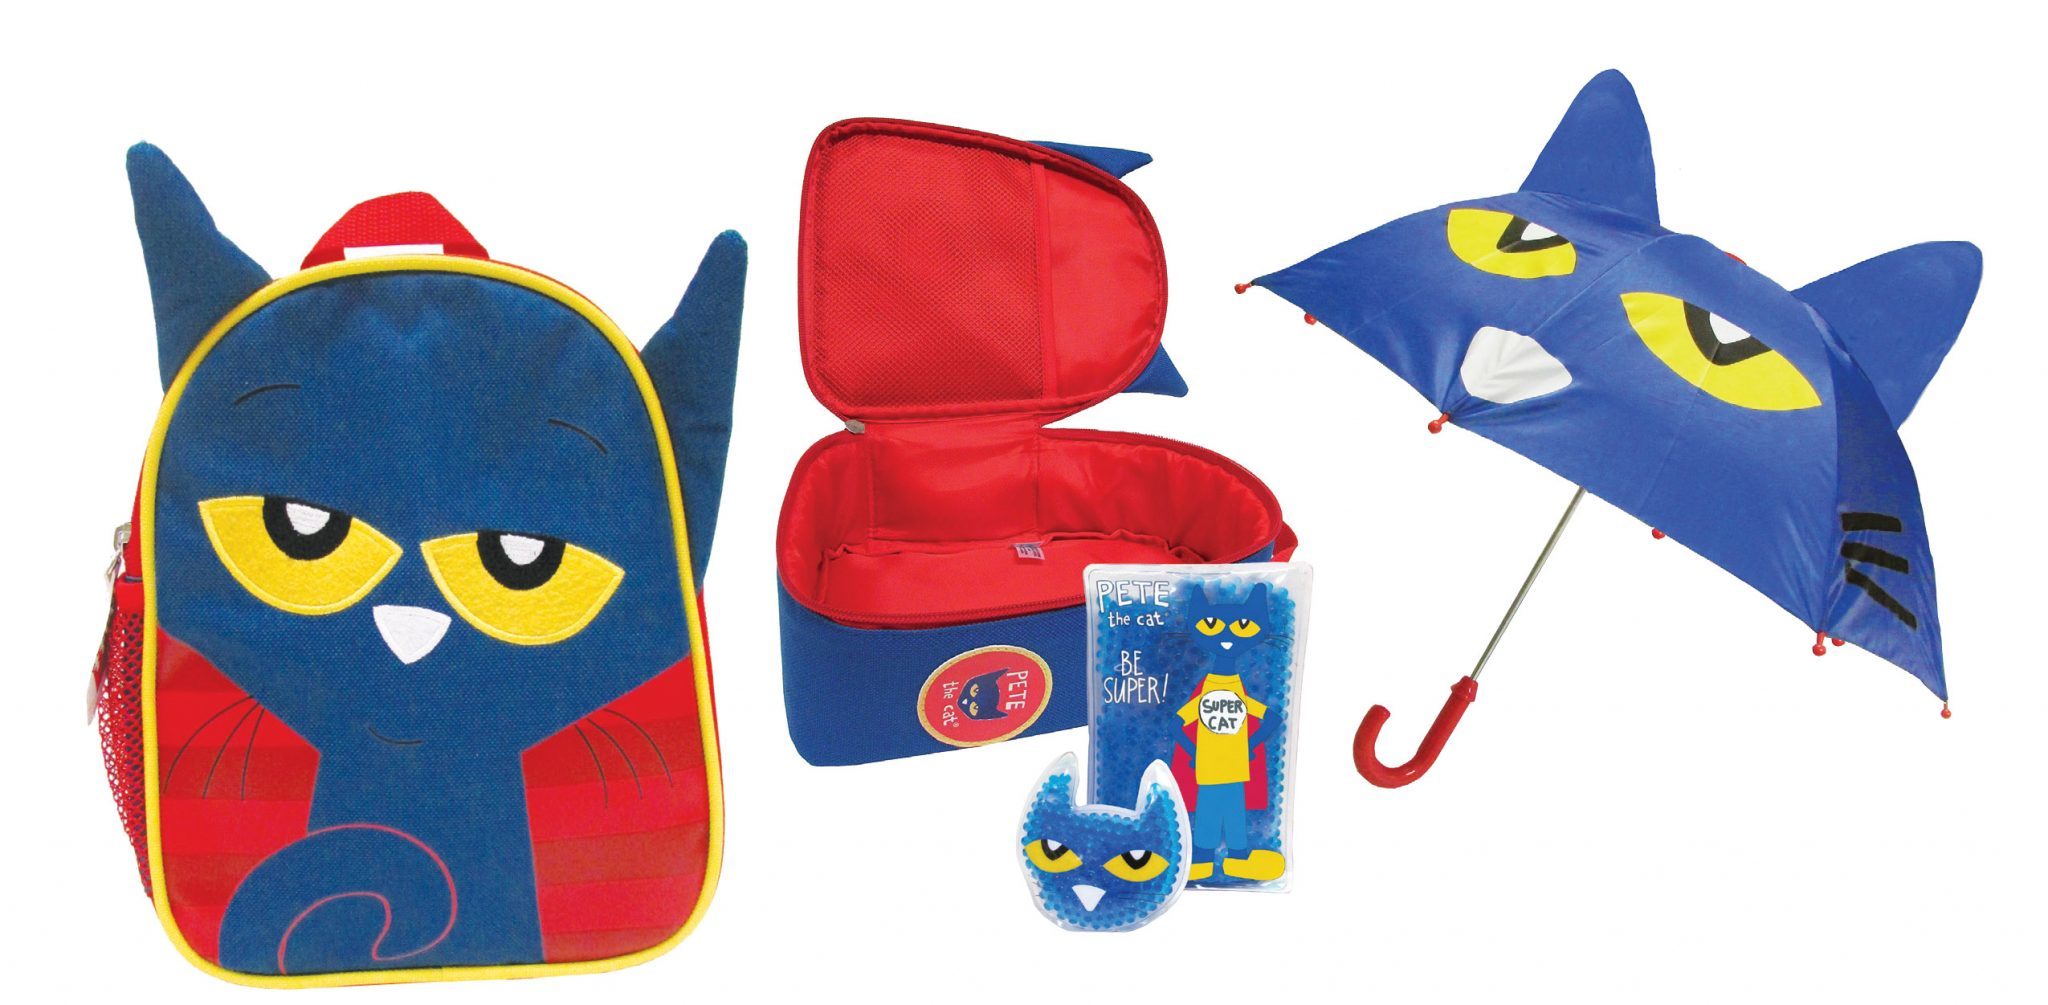 PETE THE CAT BY KIDS PREFERRED